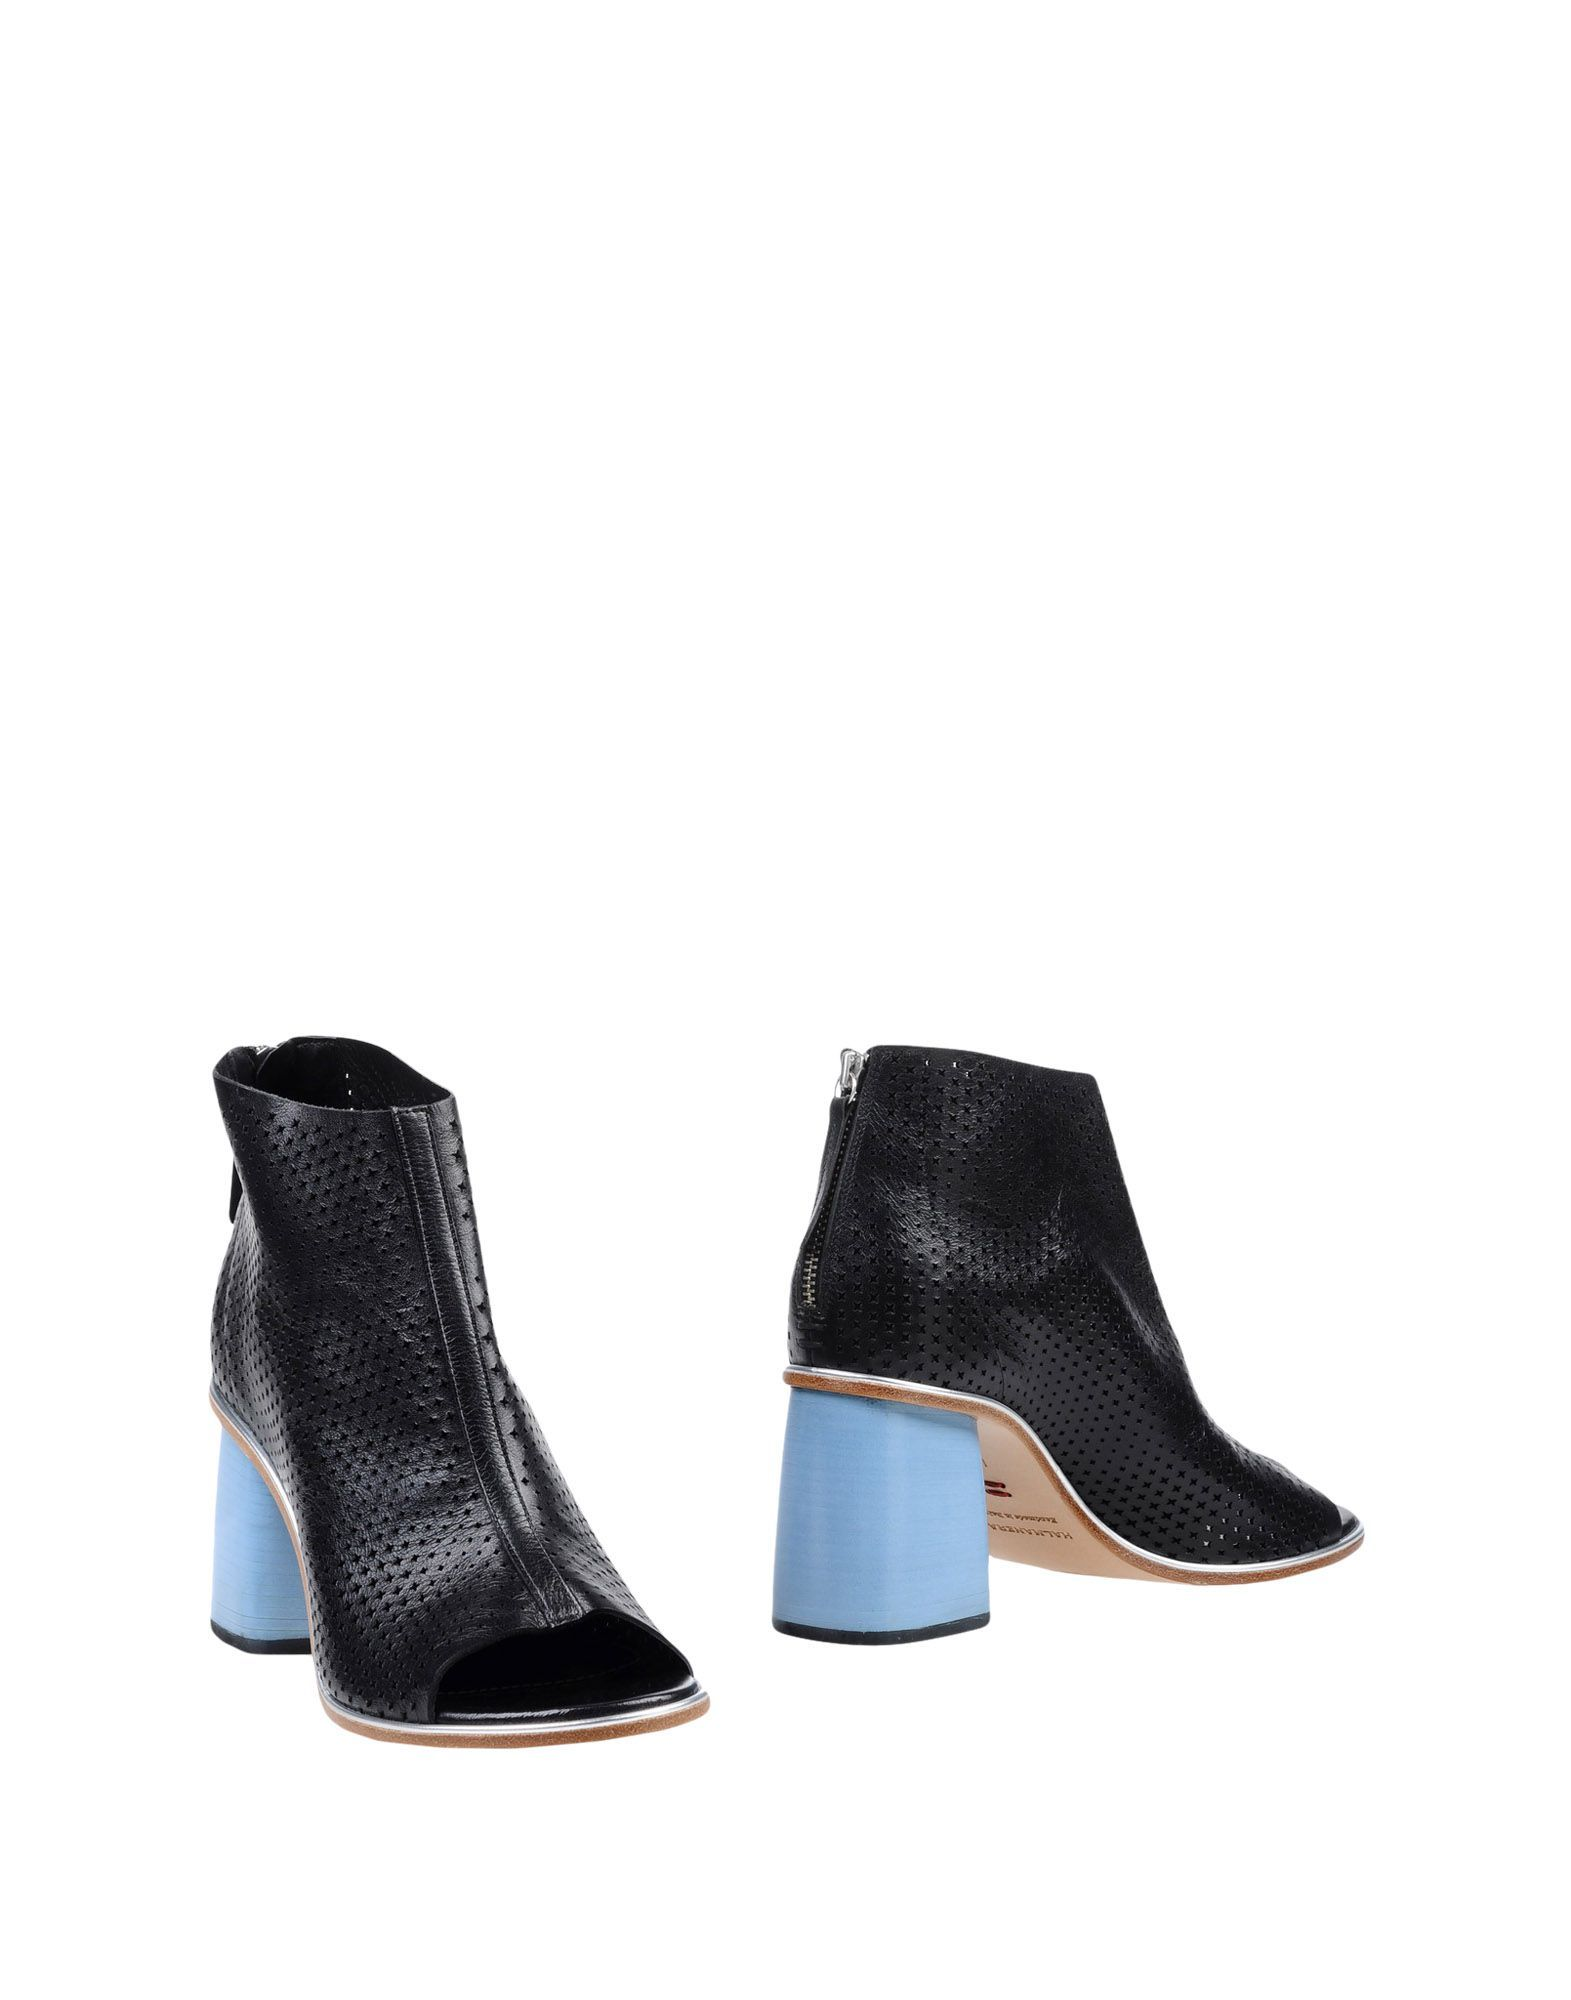 Discount Cheapest Shop Your Own FOOTWEAR - Ankle boots Halmanera Outlet Store Locations 100% Guaranteed Sale Online jLY4Hhk